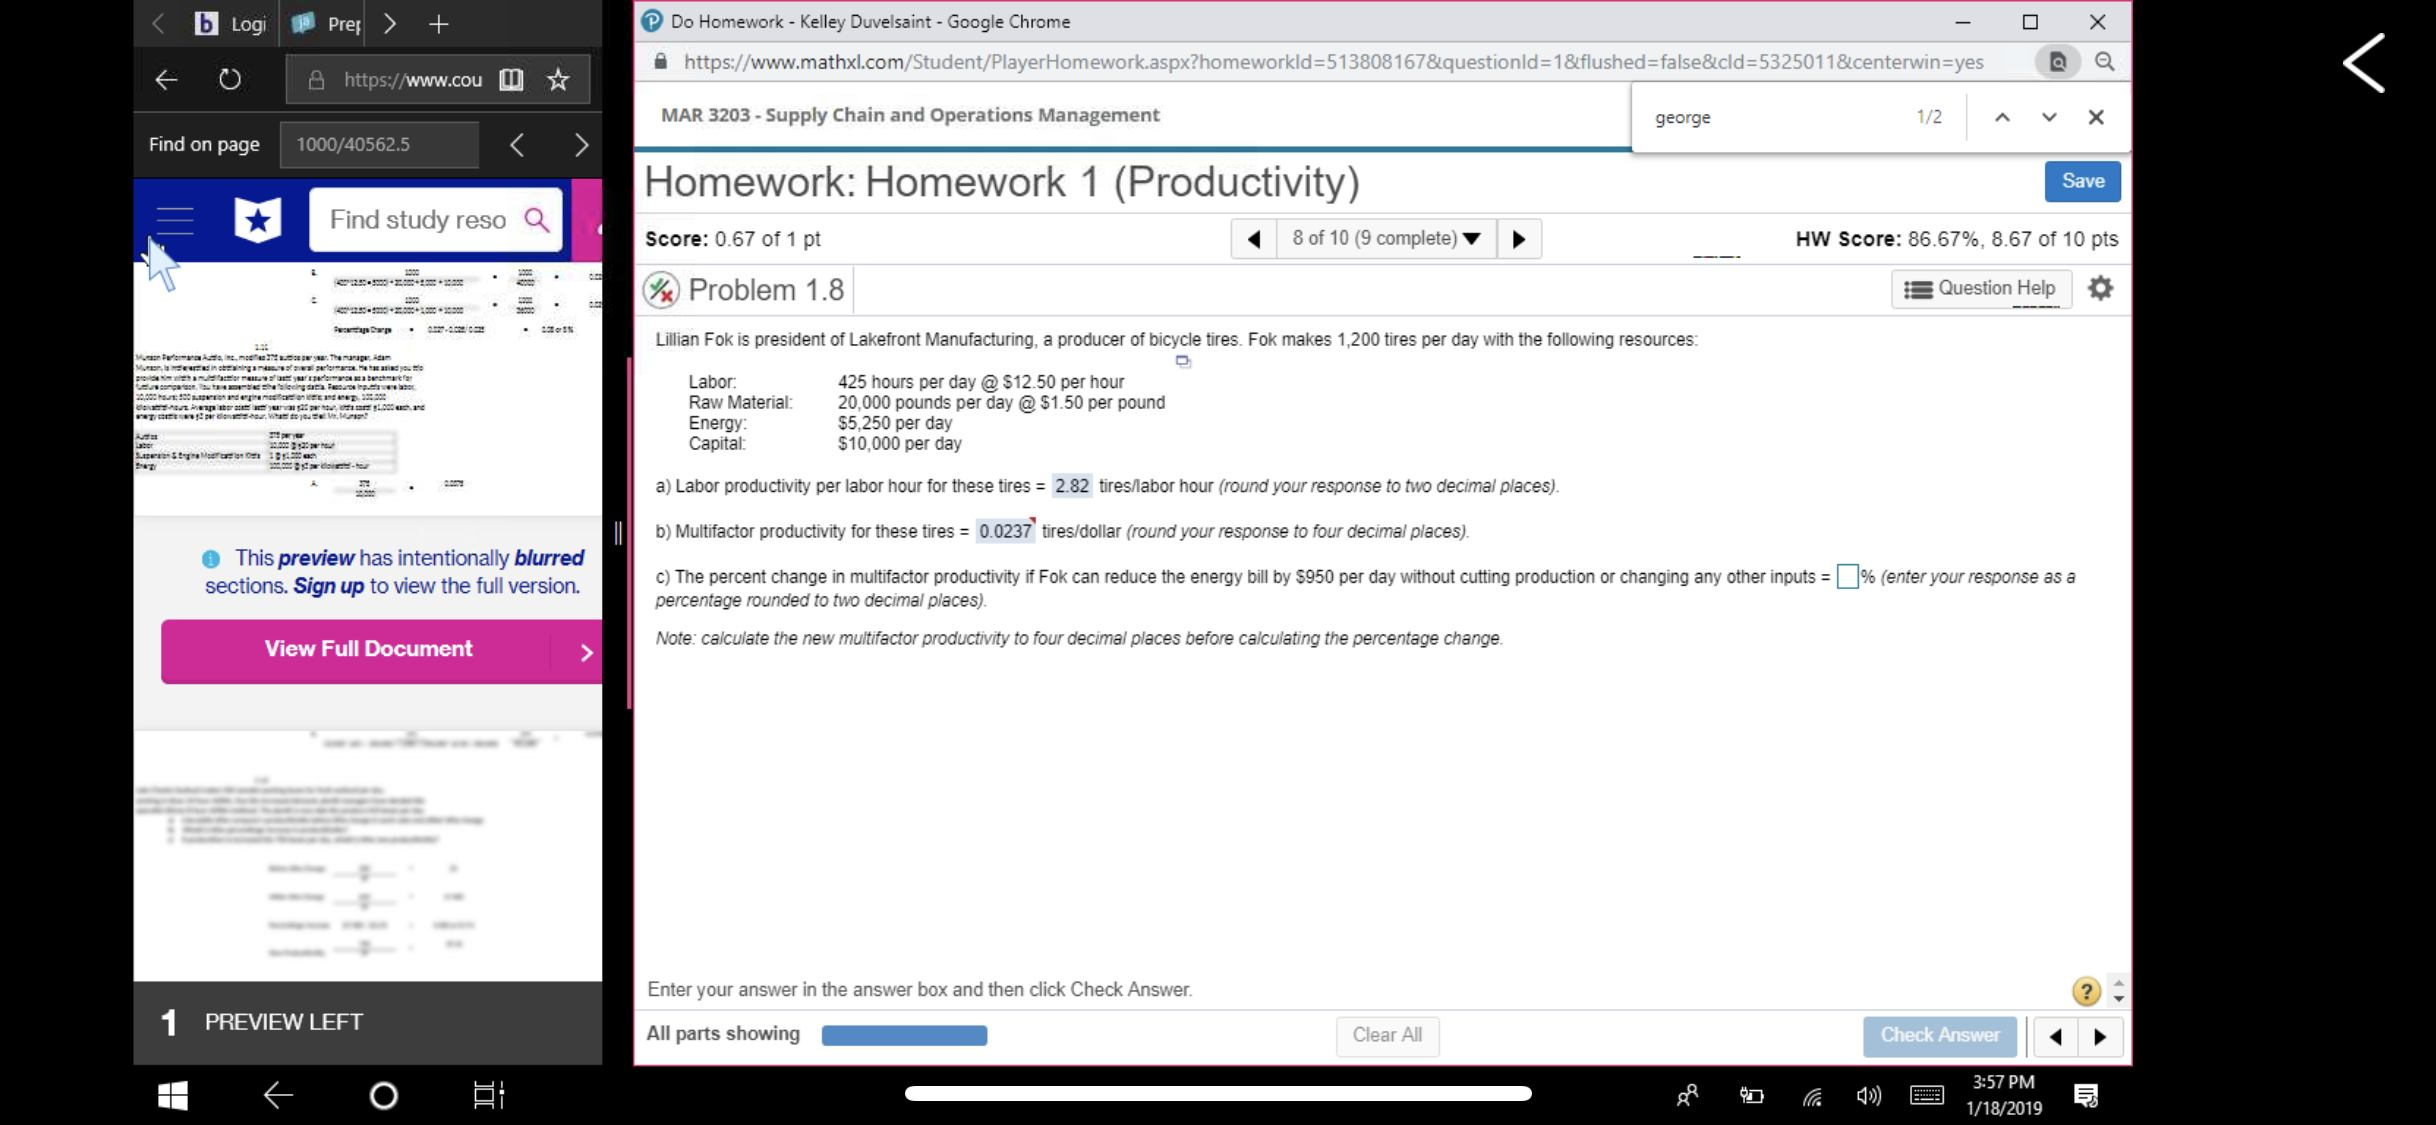 Do Homework - Kelley Duvelsaint -Google Chrome https://www.mathxl.com/Student/PlayerHomework.aspx?homeworkld-513808 167&questionid=1&flushedzfalse&cld:5325011&centerwinsyes ®a K O https://www.cou MAR 3203-Supply Chain and Operations Management george 1/2 Find on page 1000/40562.5 Homework: Homework 1 (Productivity) Score: 0.67 of 1 pt Problem 1.8 Save Find study reso Q 8 of 10 (9 complete) HW Score: 86.67%, 8.67 of 10 pts Question Help Lillian Fok is president of Lakefront Manufacturing, a producer of bicycle tires. Fok makes 1,200 tires per day with the following resources Labor 425 hours per day @$12.50 per hour Raw Material 20,000 pounds per day @ $1.50 per pound $5,250 per day $10,000 per day Energy Capital a) Labor productivity per labor hour for these tires 2.82 tires/labor hour (round your response to two decimal places) b) Multifactor productivity for these tires 0.0237 tires/dollar (round your response to four decimal places) c) The percent change in mult factor productivity Fok can reduce the energy bill by S950 per day without cutting production or changing any other inputs- This preview has intentionally blurred sections. Sign up to view the full version. % enter your response as a percentage rounded to two decimal places) Note: calculate the new multifactor productivity to four decimal places before calculating the percentage change View Full Document Enter your answer in the answer box and then click Check Answer PREVIEW LEFT All parts showing Clear All Check Answer 3:57 PM 1/18/2019